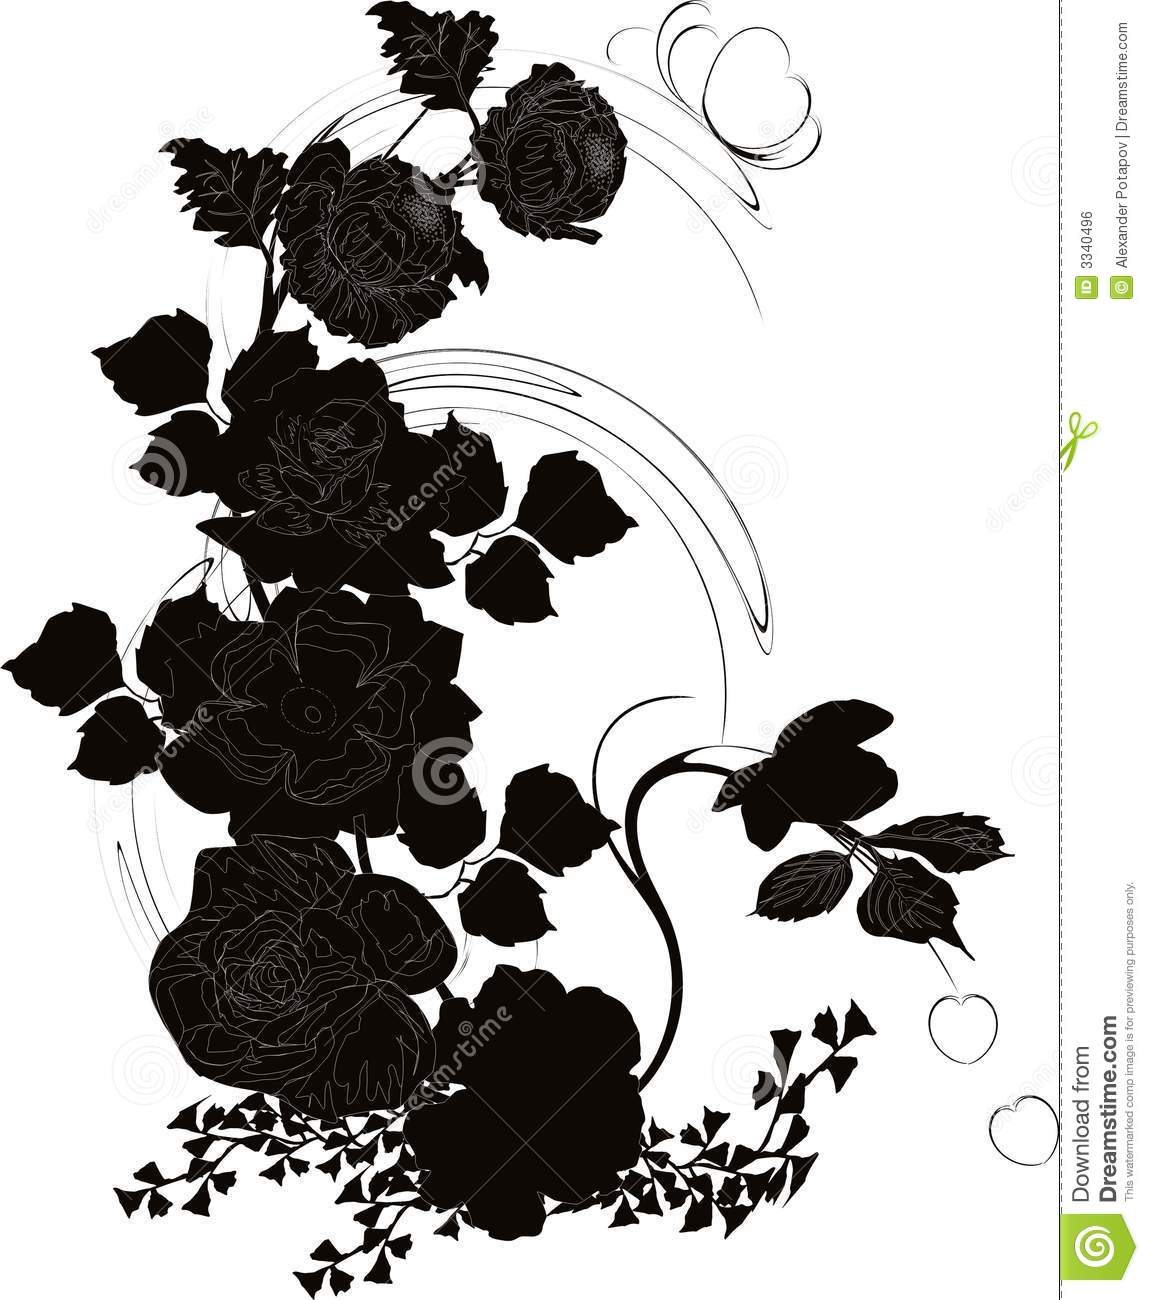 Rose outline vector image - Poppy And Rose Silhouette Royalty Free Stock Image Image